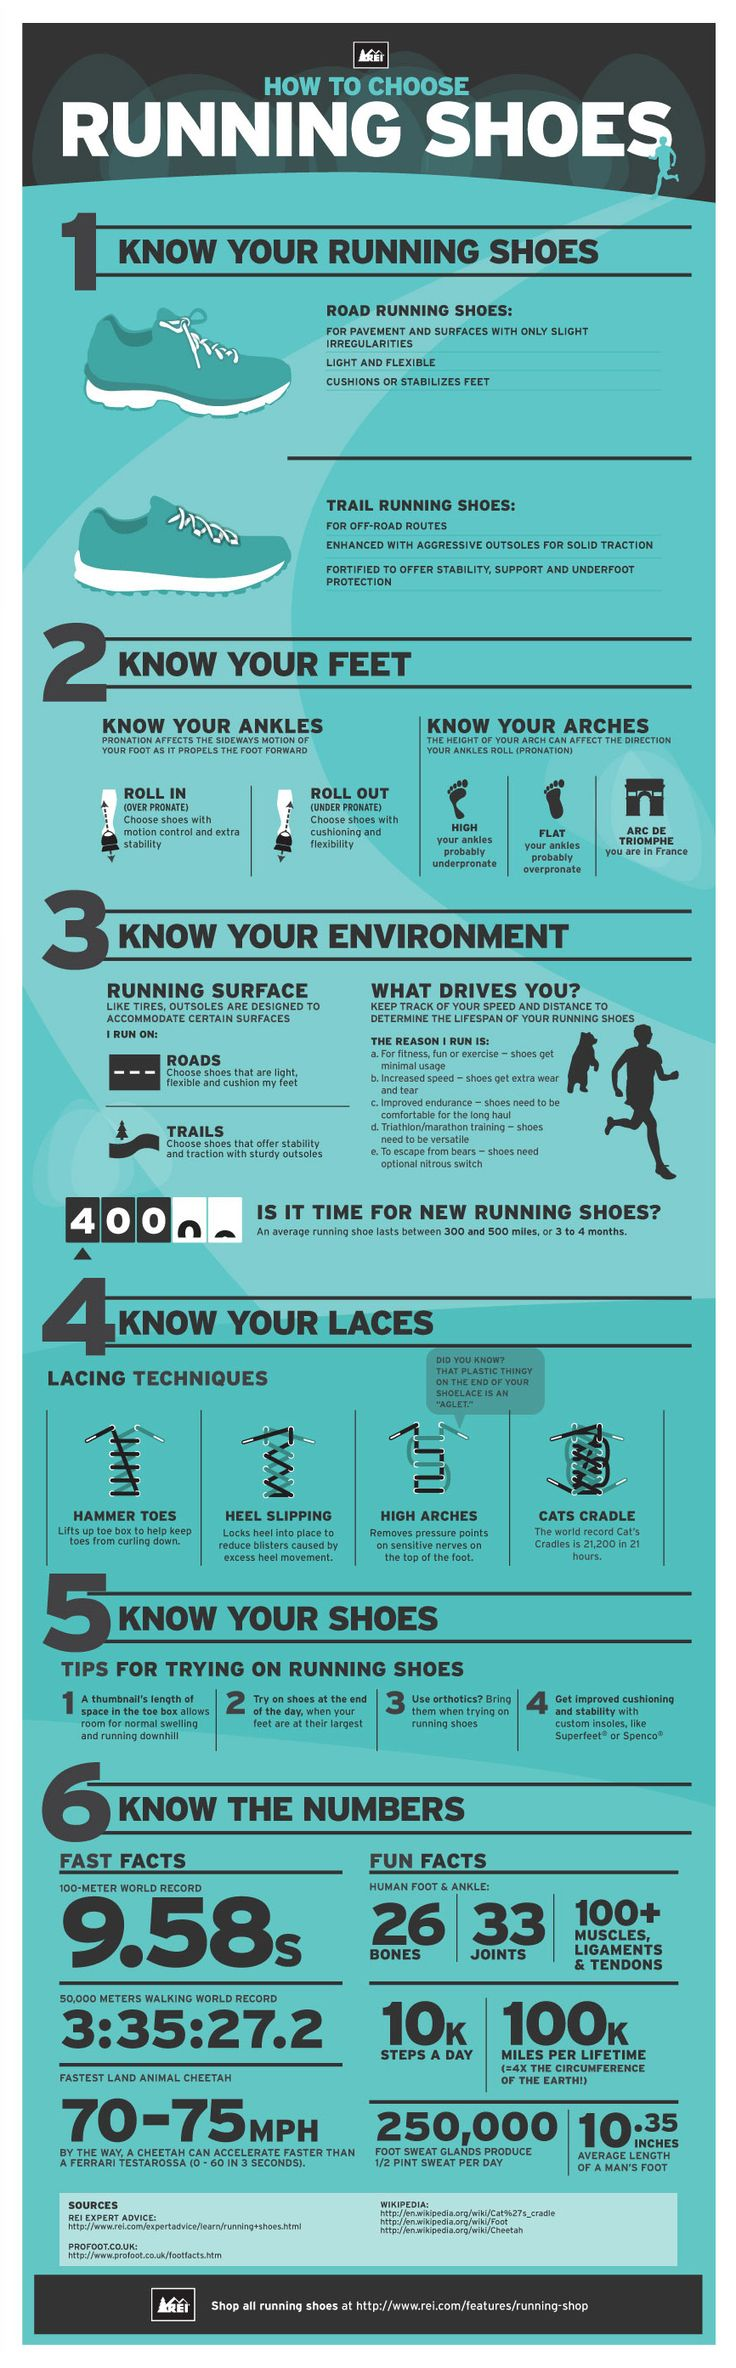 Running Shoes Infographic: How to Choose the Best Running Shoes - Lightscap3s.com